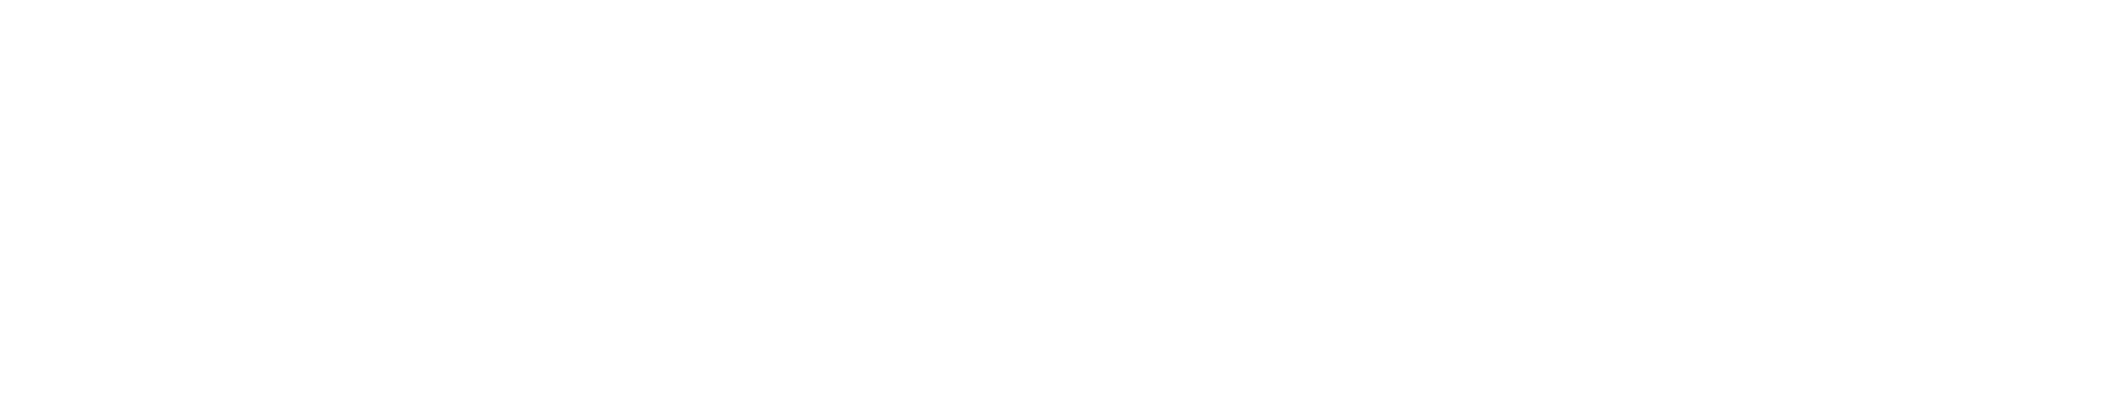 Dr. Erkens Consulting Group